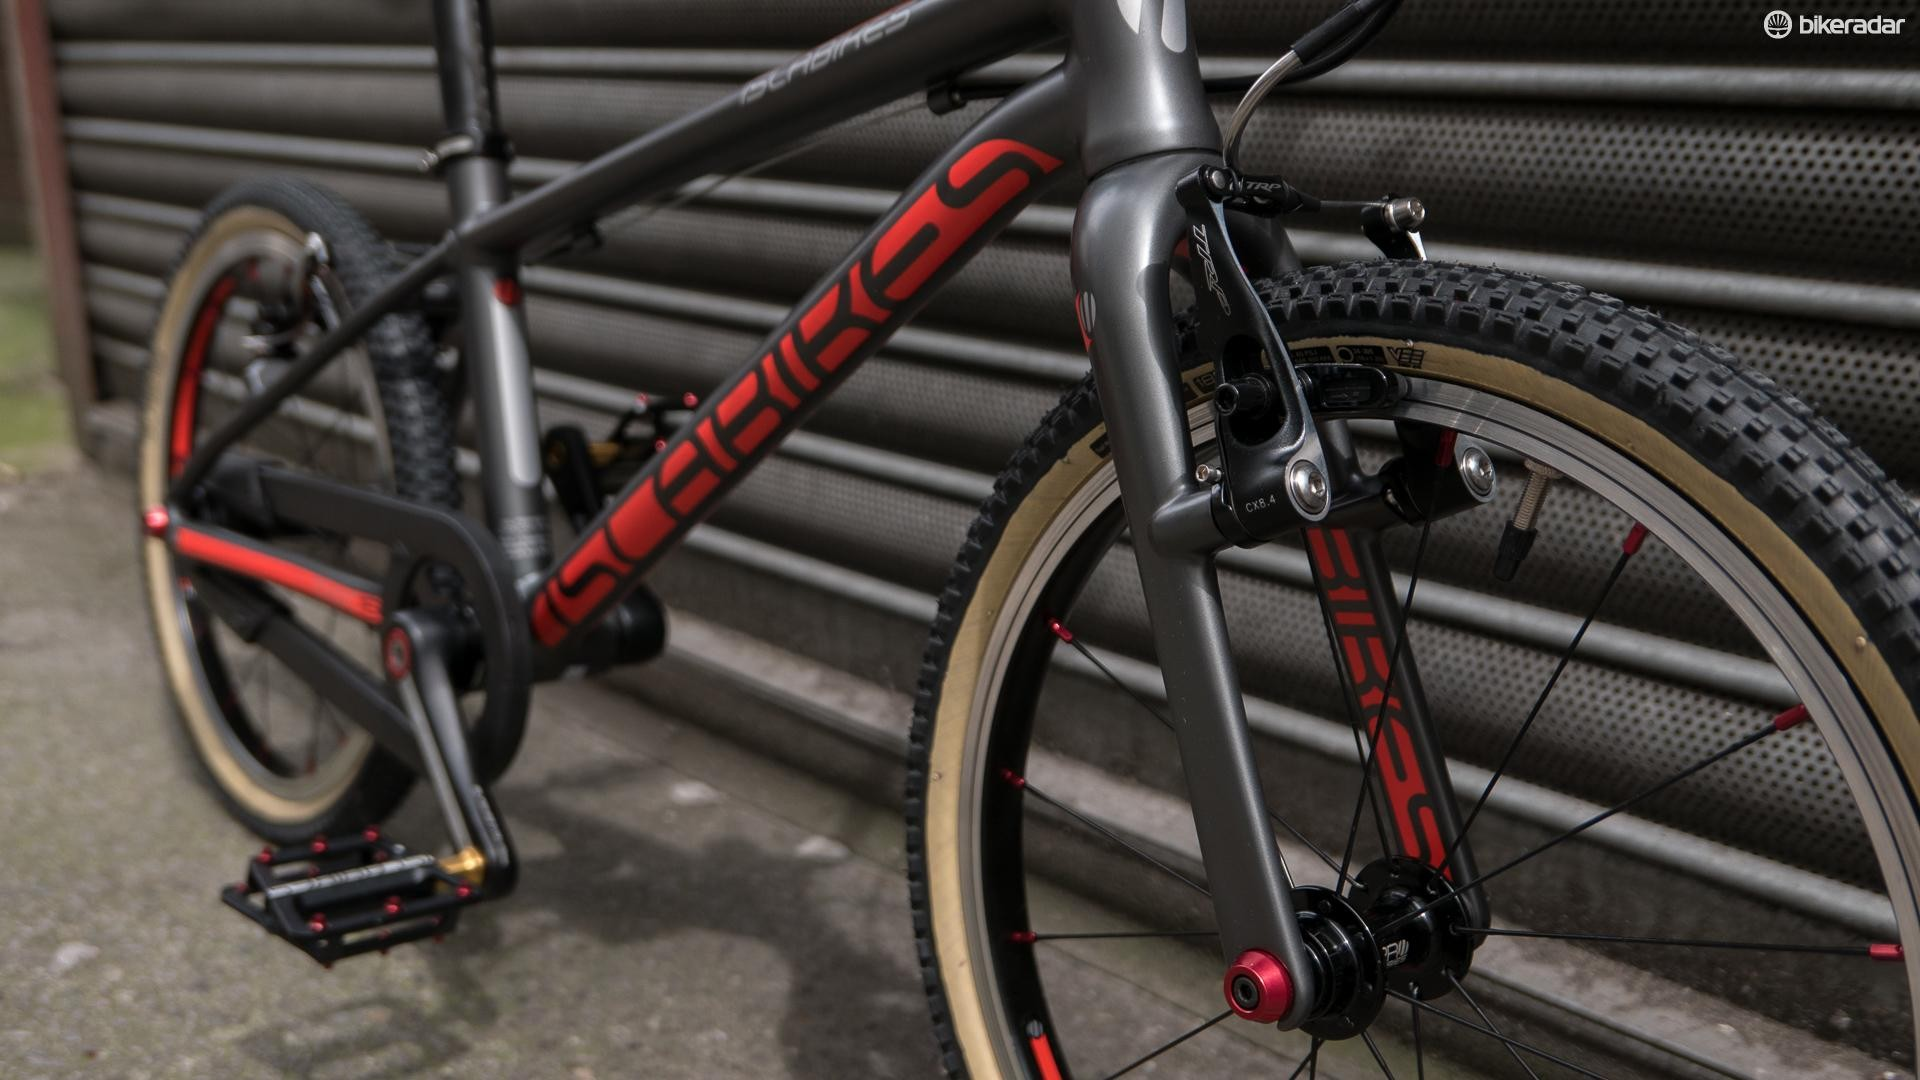 The Cnoc 16 uses a carbon fork and neat TRP mini V-brakes